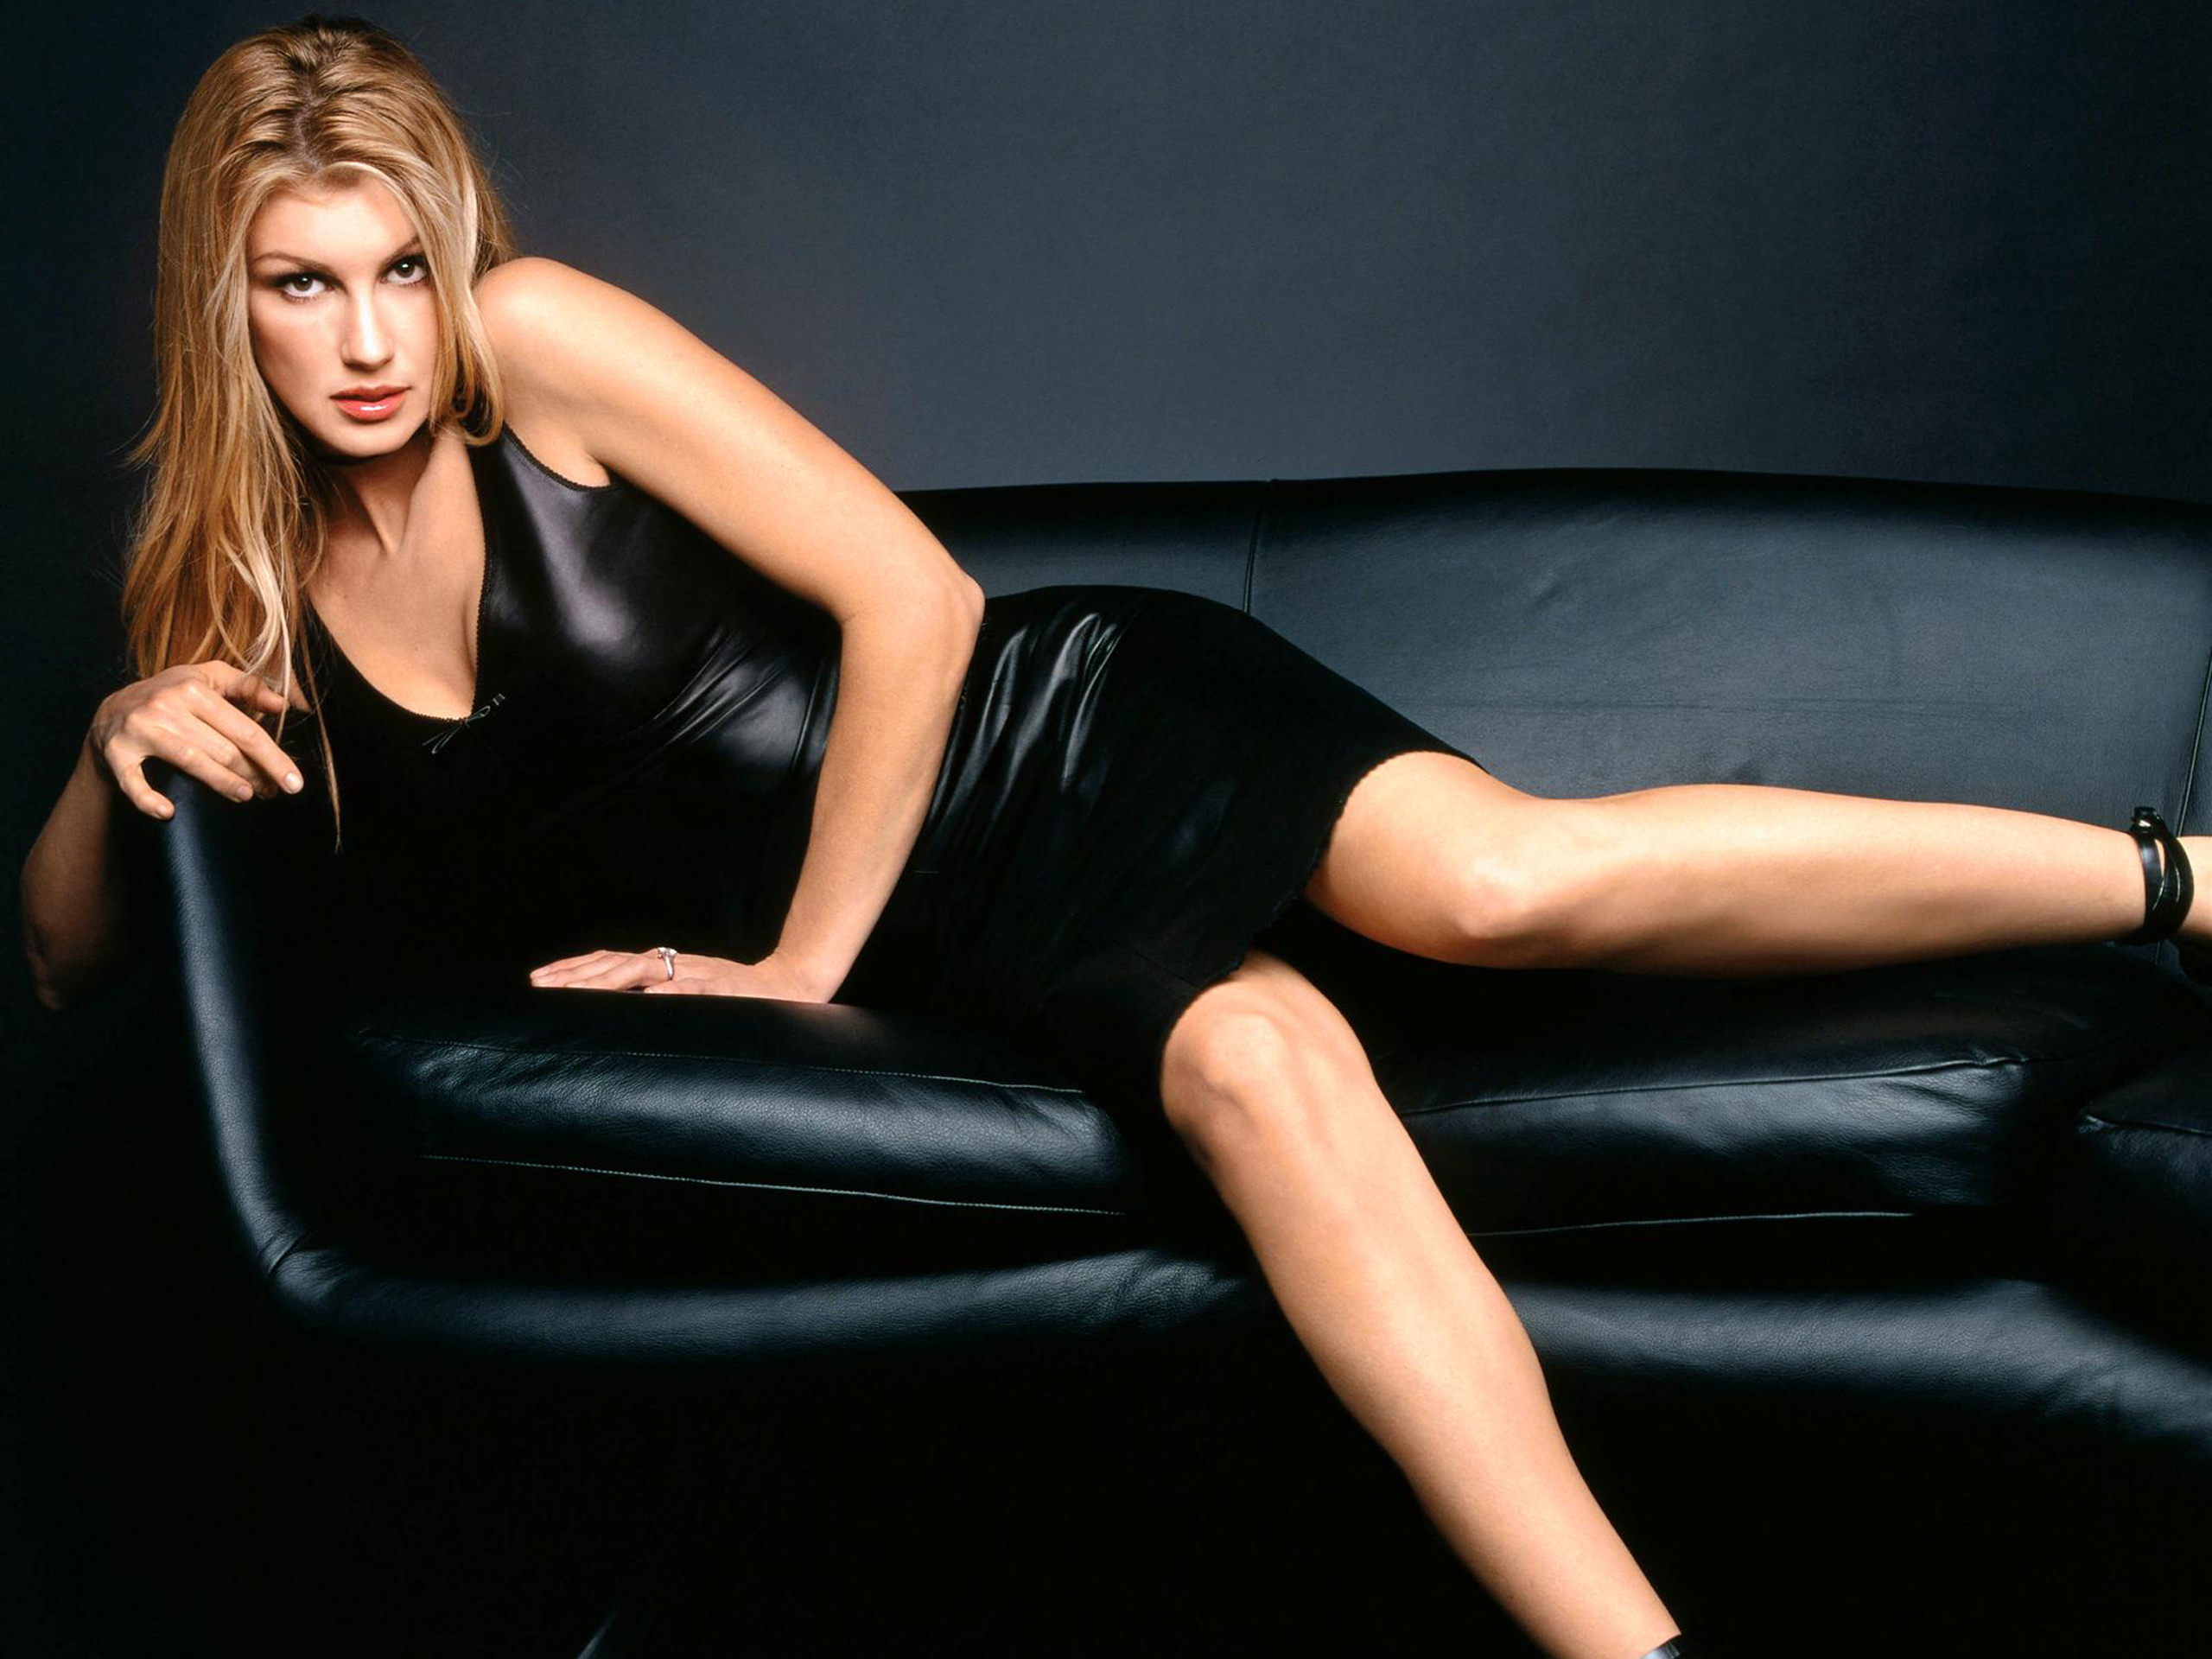 faith hill 4k widescreen desktop wallpaper 1208